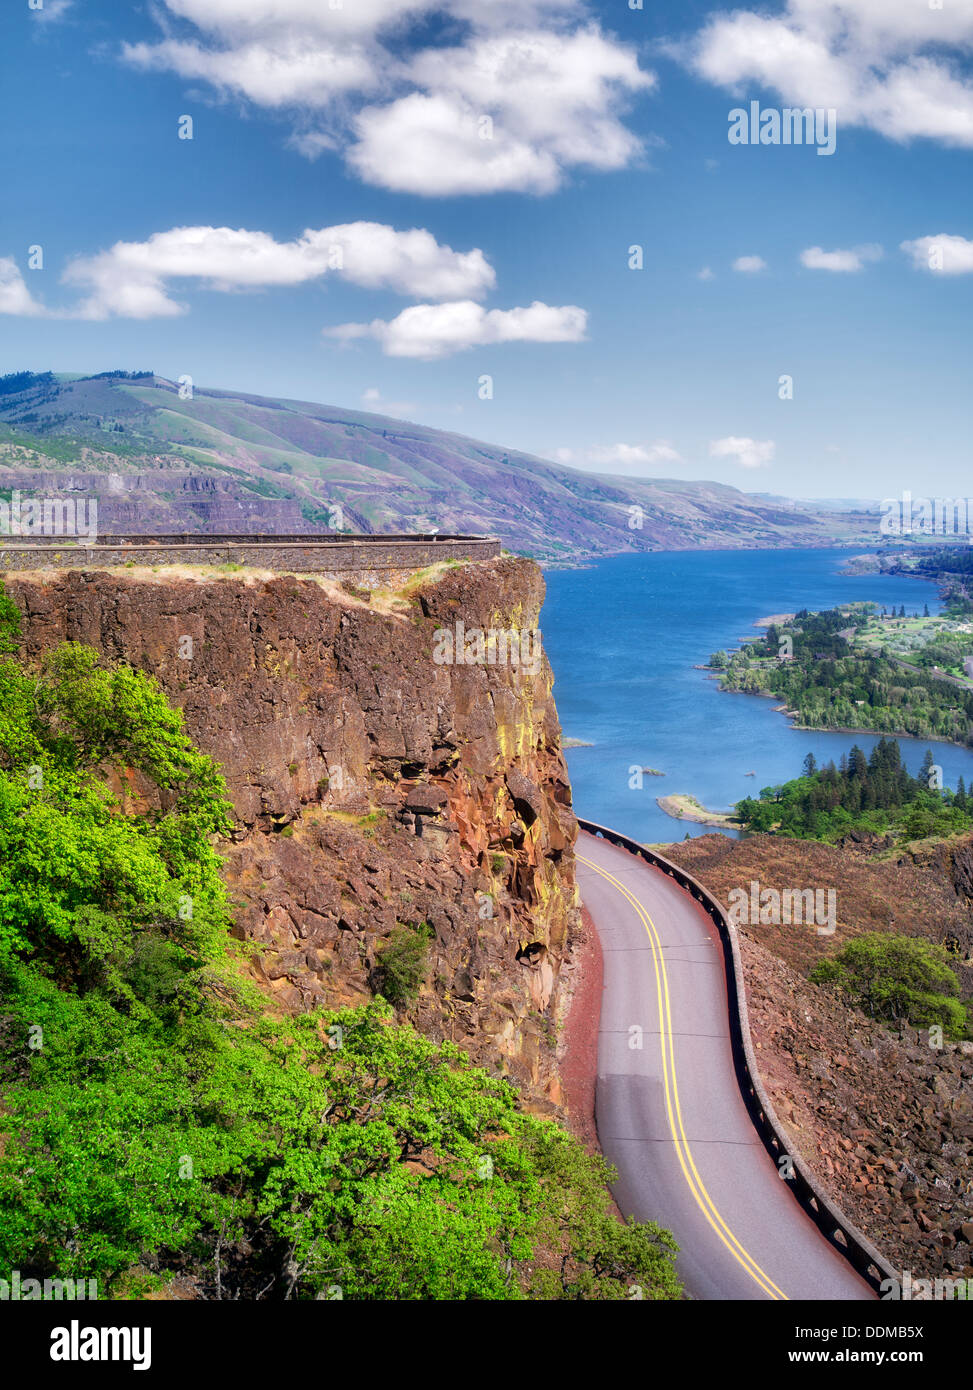 Road in Columbia River Gorge National Scenic Area, Oregon - Stock Image